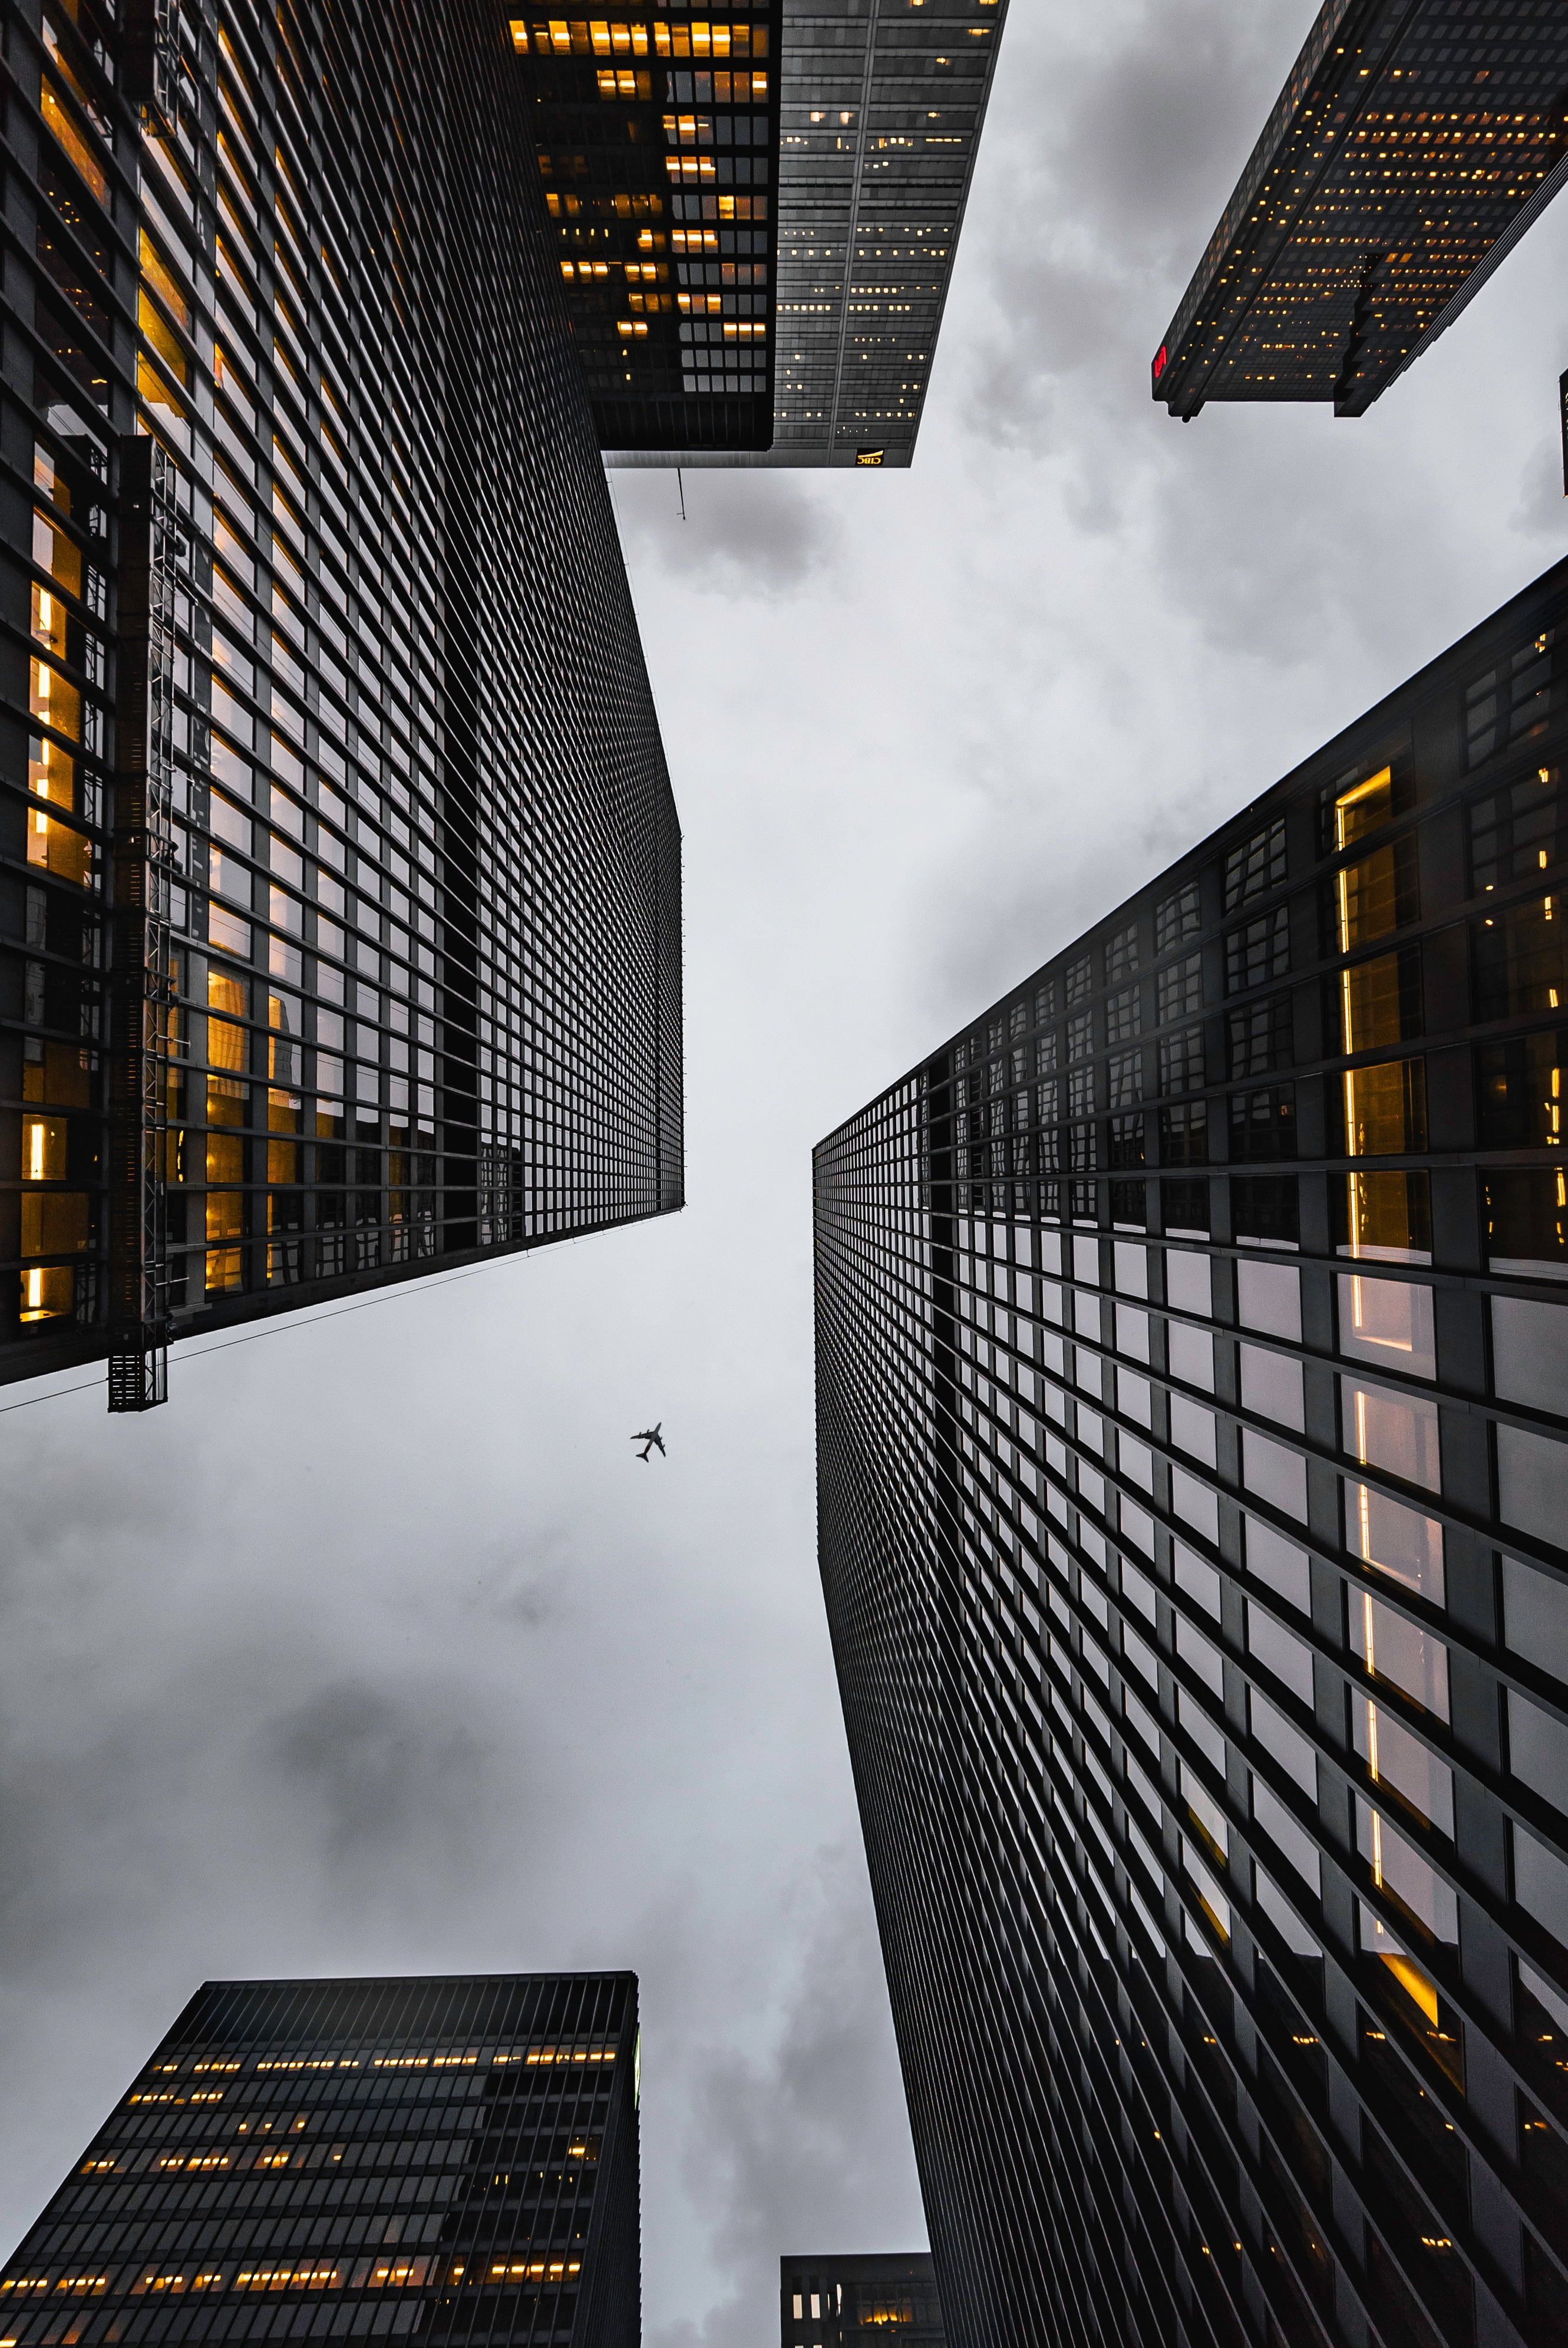 I have about 20 old ps2 keyboards, how can i build them into a super computer. i've aslo got a bunch of old video crds and some memory chips. architectural photography #airplane #buildings # ...